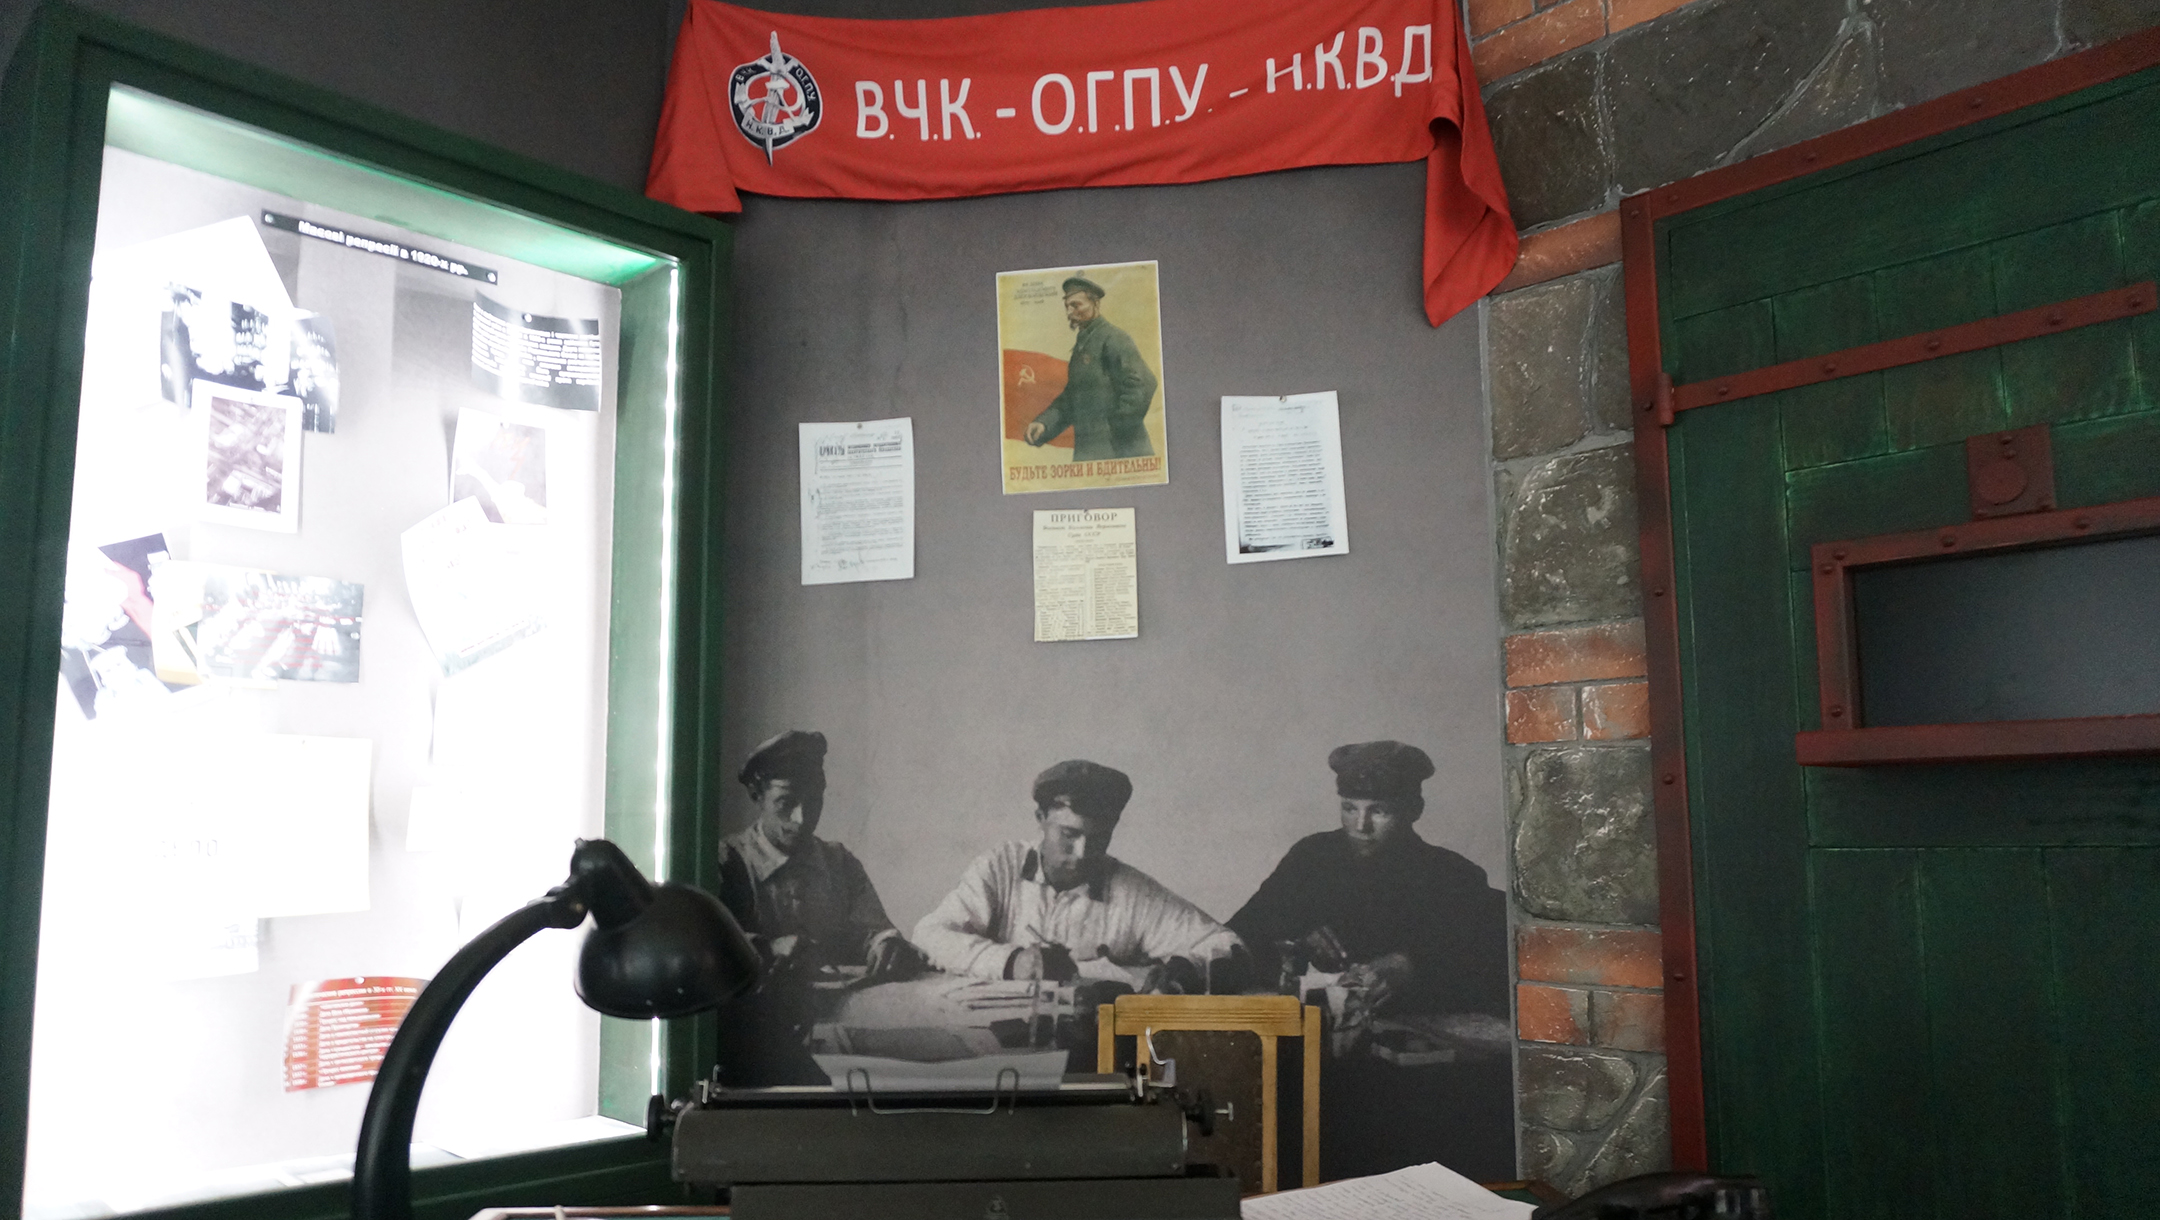 art of an exhibition about communist Jews who killed non-Jewish Ukrainians at the Tkuma museum in Dnepro, Ukraine on May 20, 2014. (Cnaan Liphshiz)